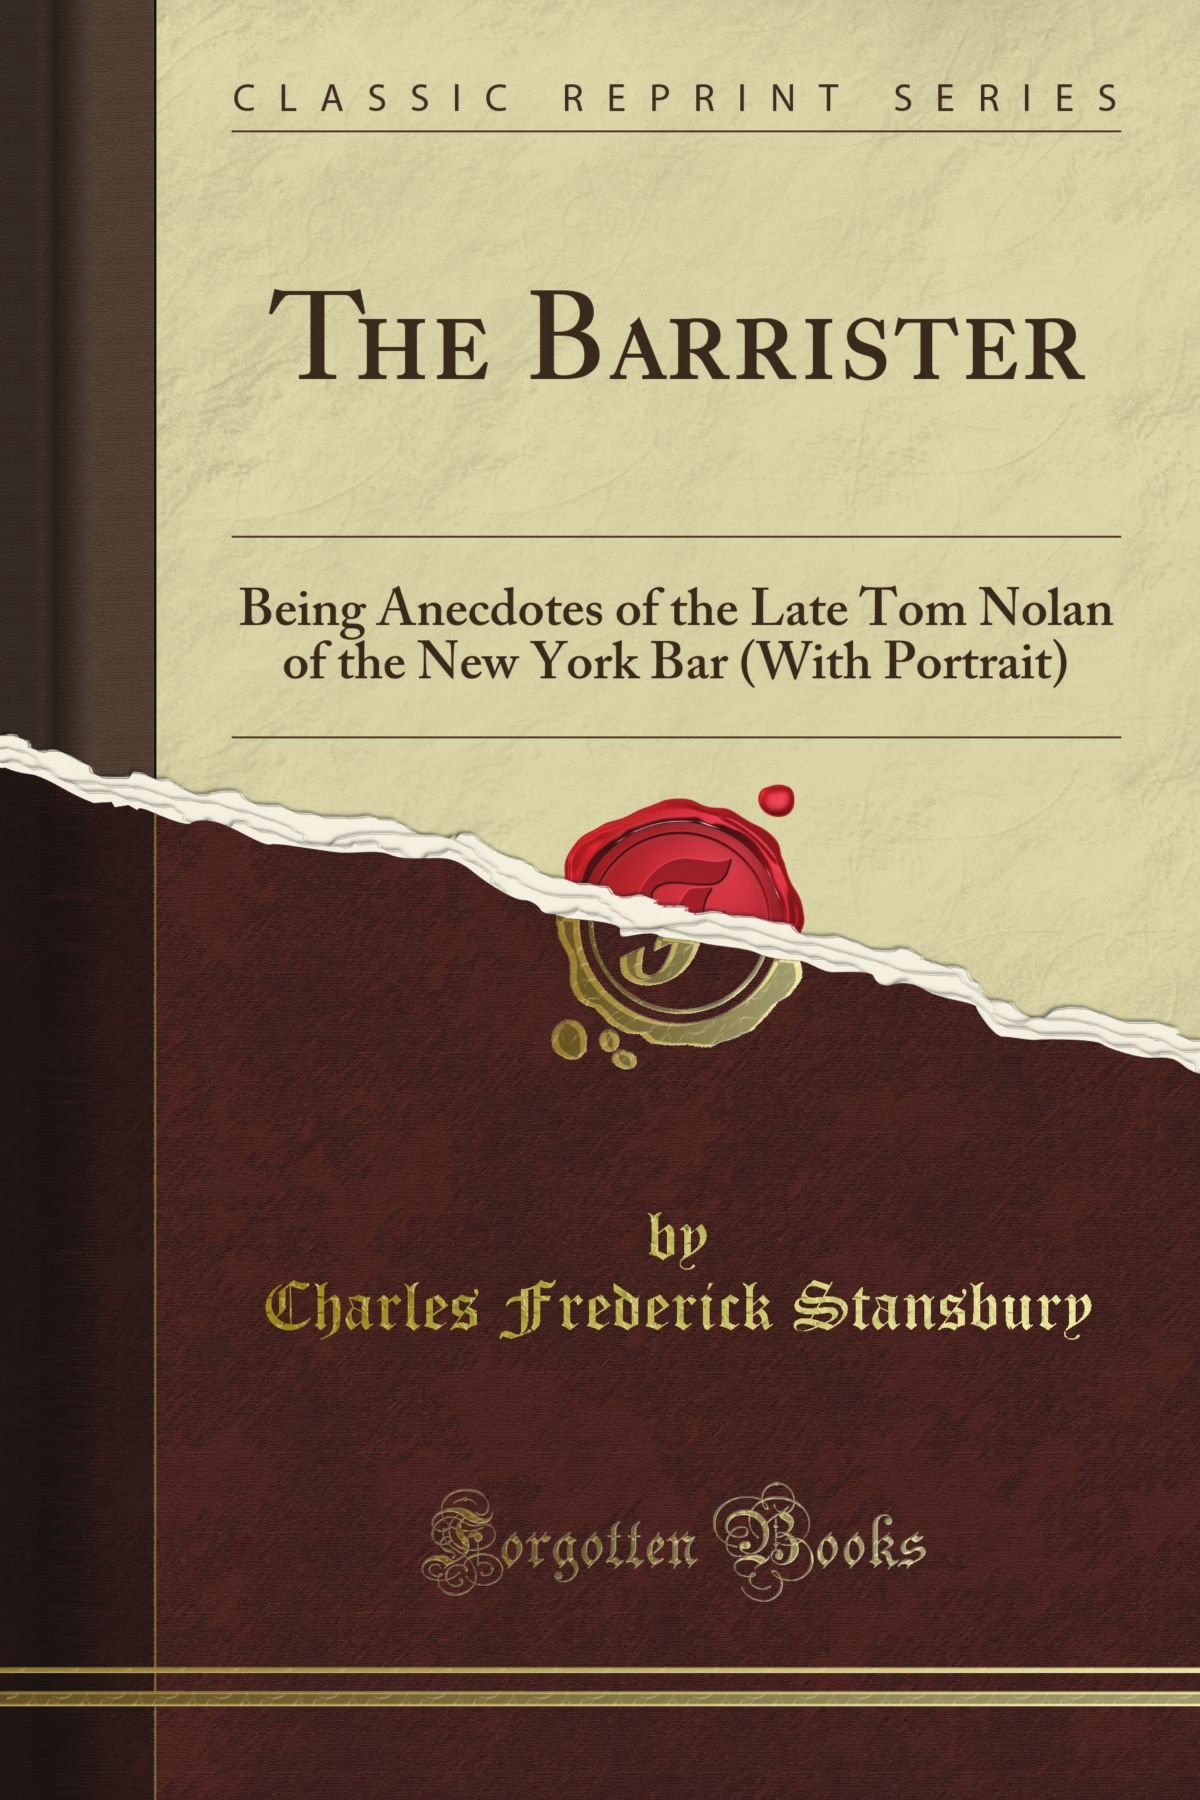 The Barrister: Being Anecdotes of the Late Tom Nolan of the New York Bar (With Portrait) (Classic Reprint) pdf